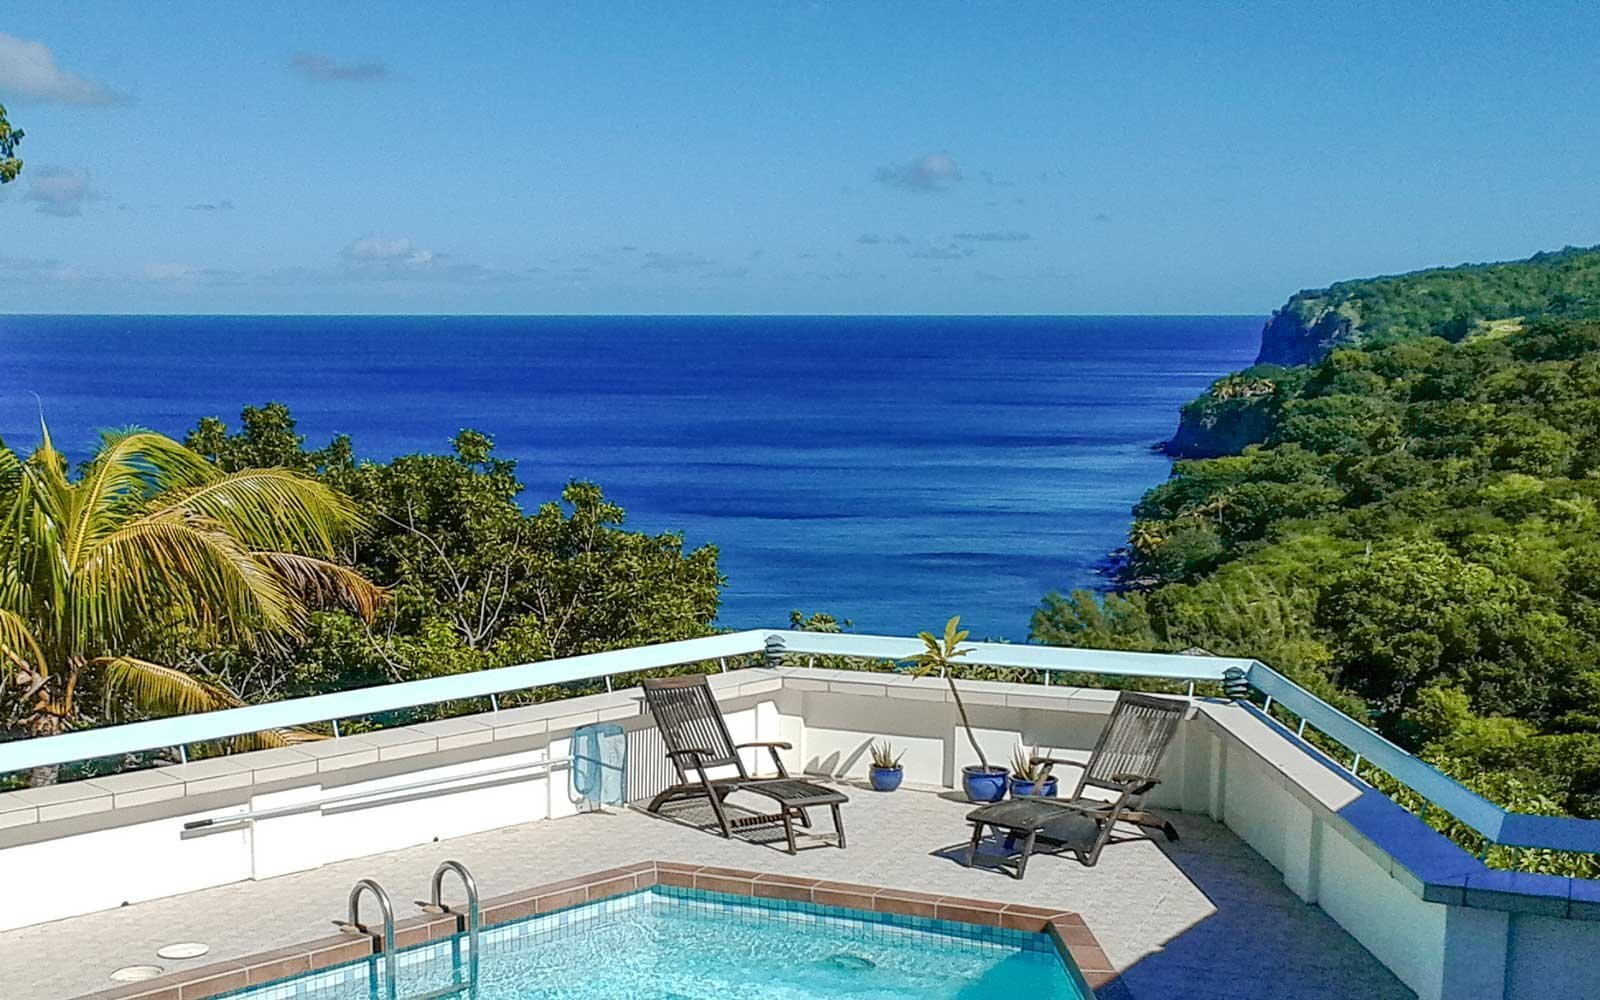 The Best Airbnbs in the Caribbean | Travel + Leisure